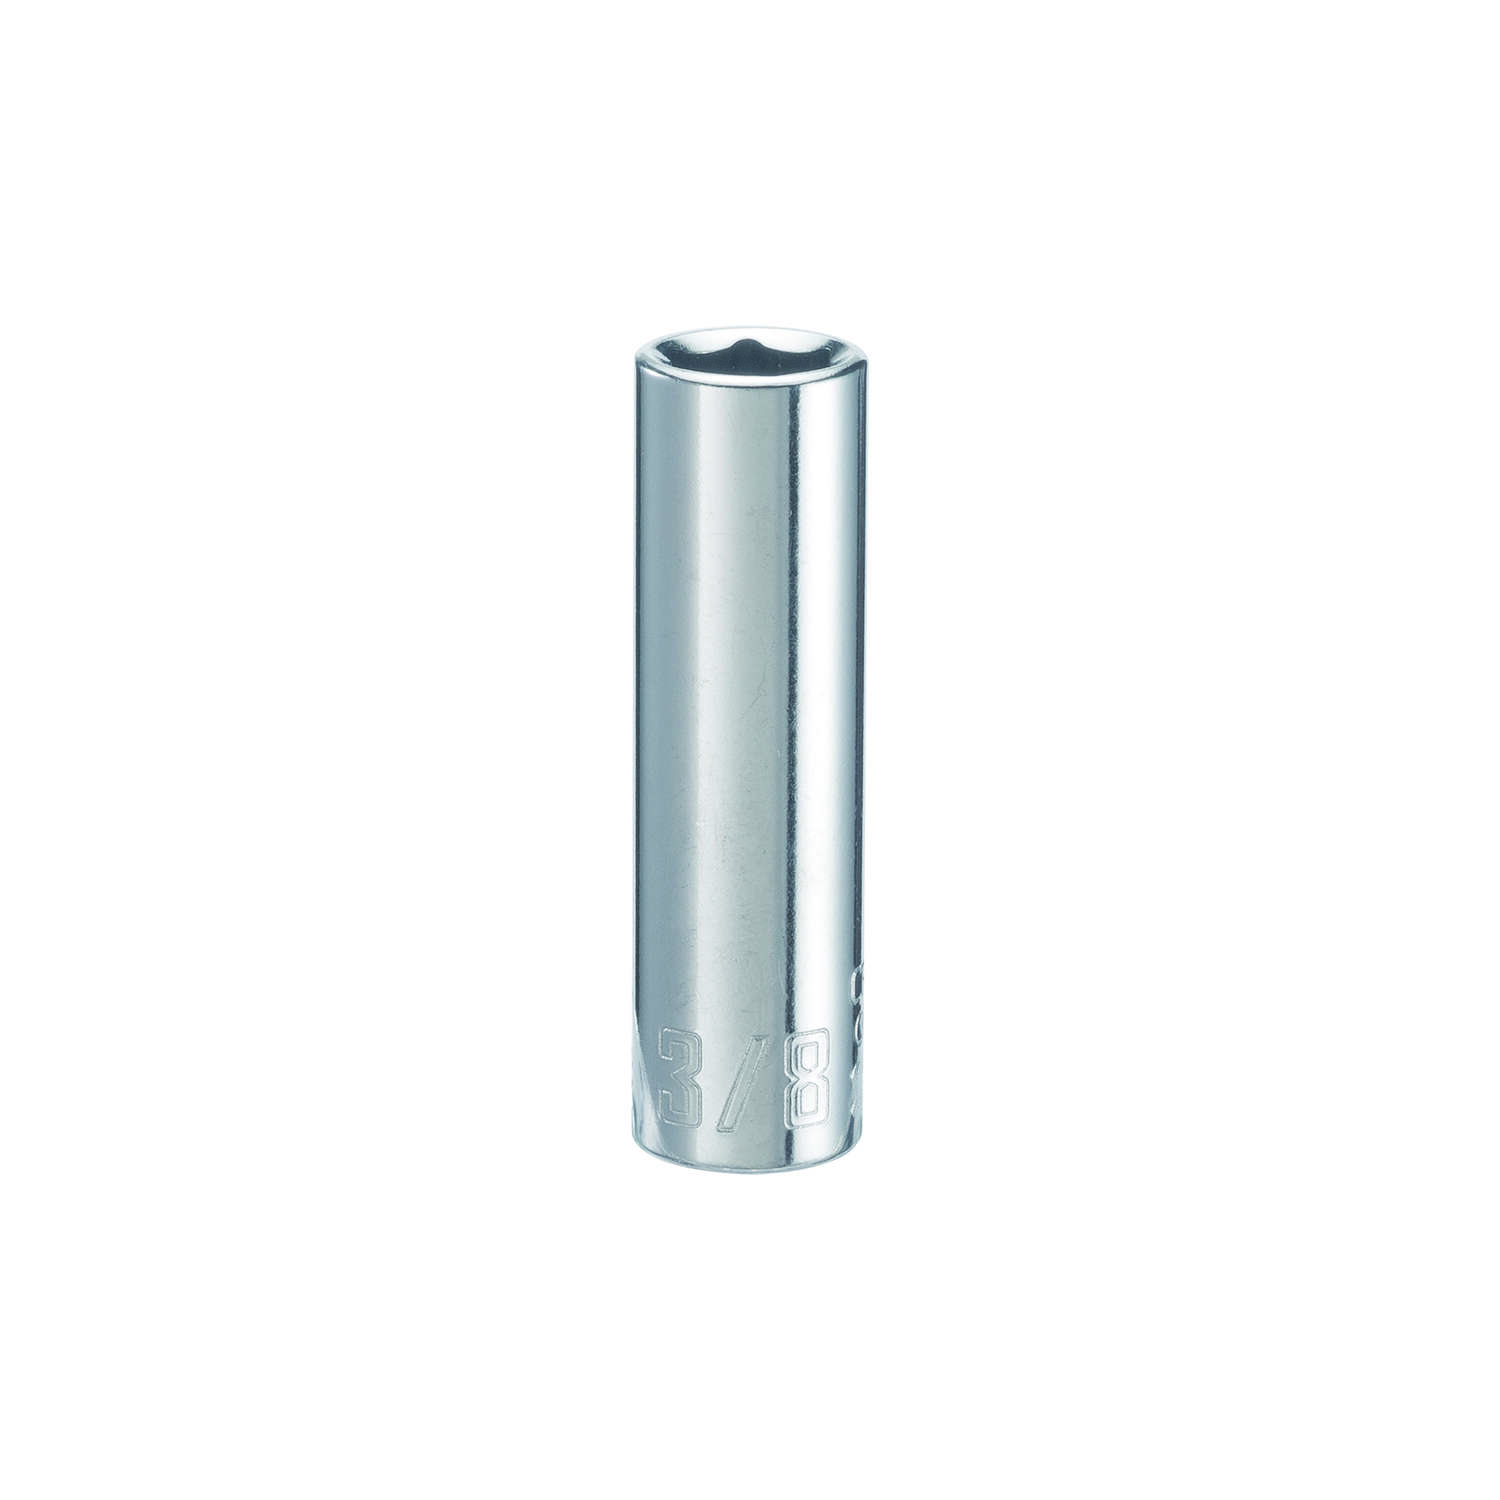 Craftsman  3/8 in.  x 1/4 in. drive  SAE  6 Point Deep  Socket  1 pc.